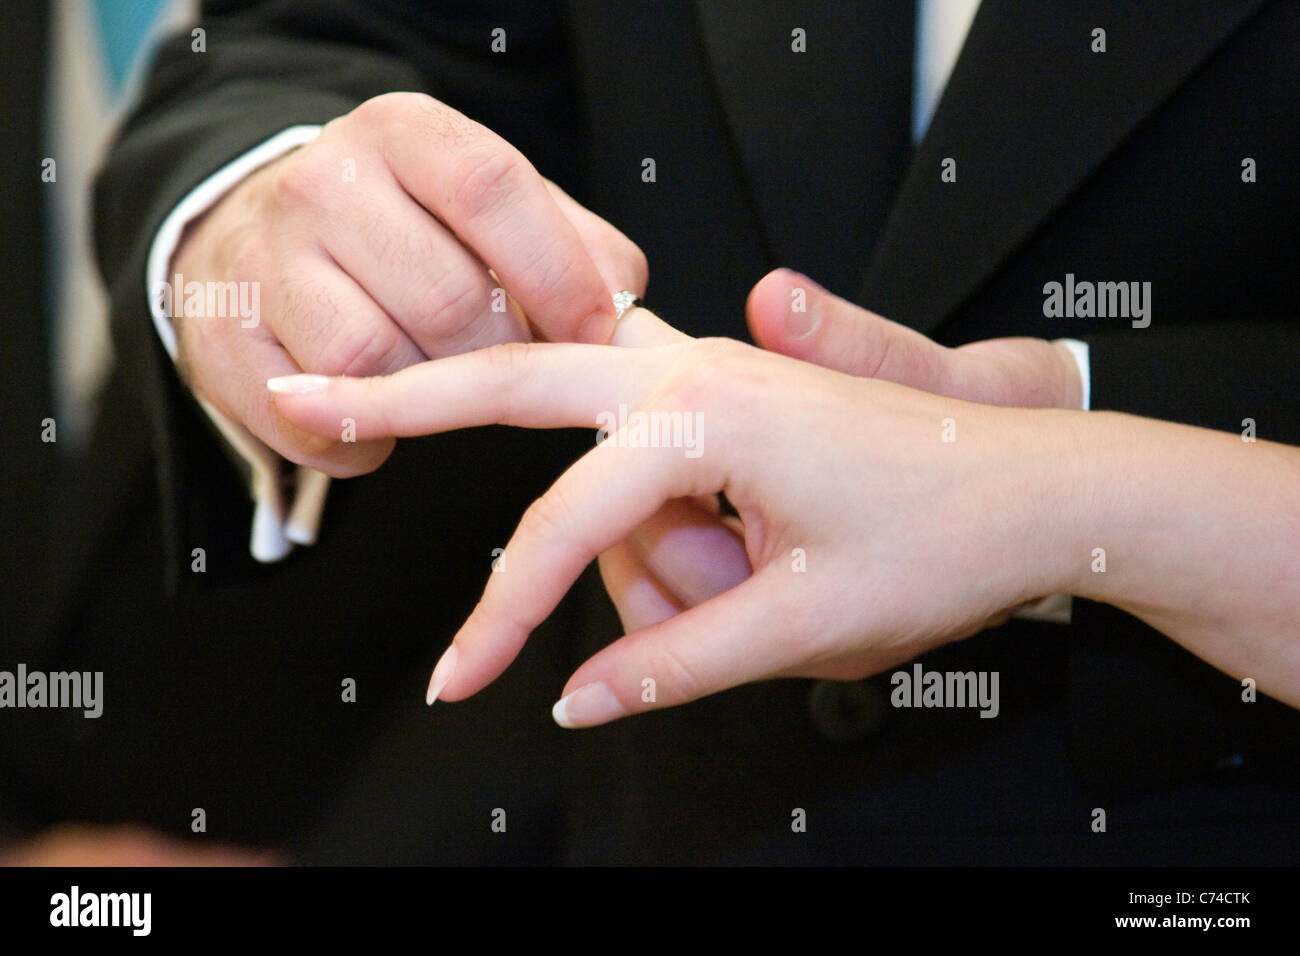 Christian Wedding Ring Stock Photos & Christian Wedding Ring Stock ...